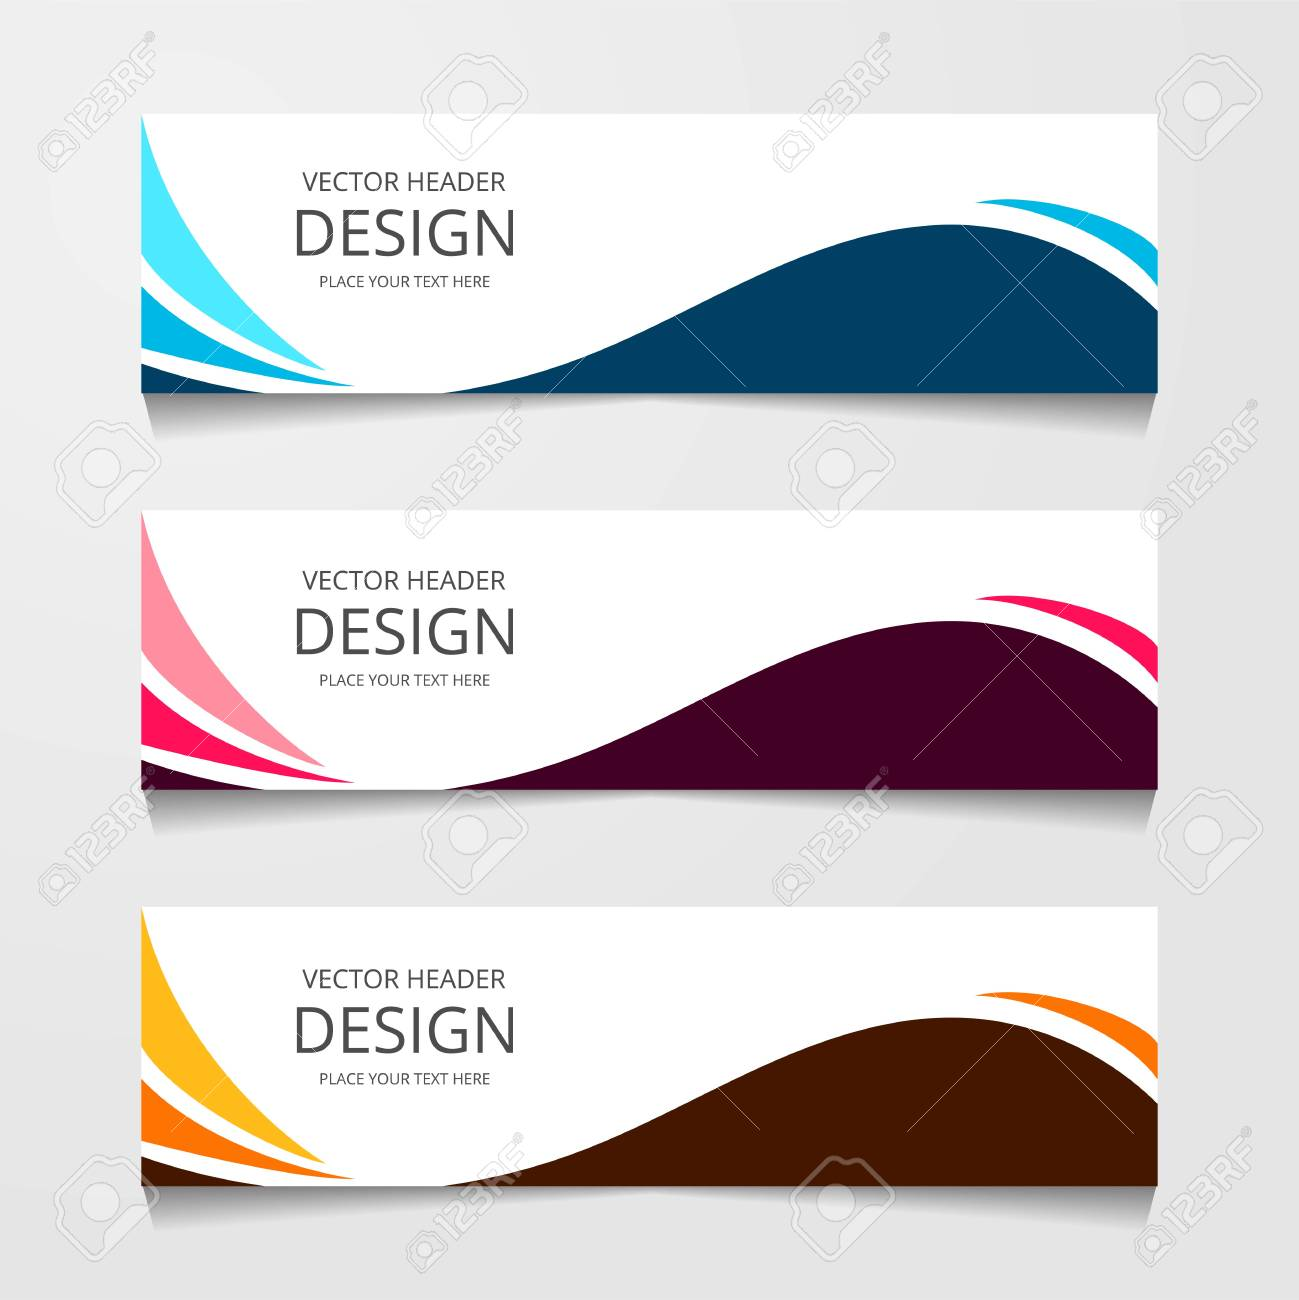 Download Free Modern Business Banner Templates At Rawpixel